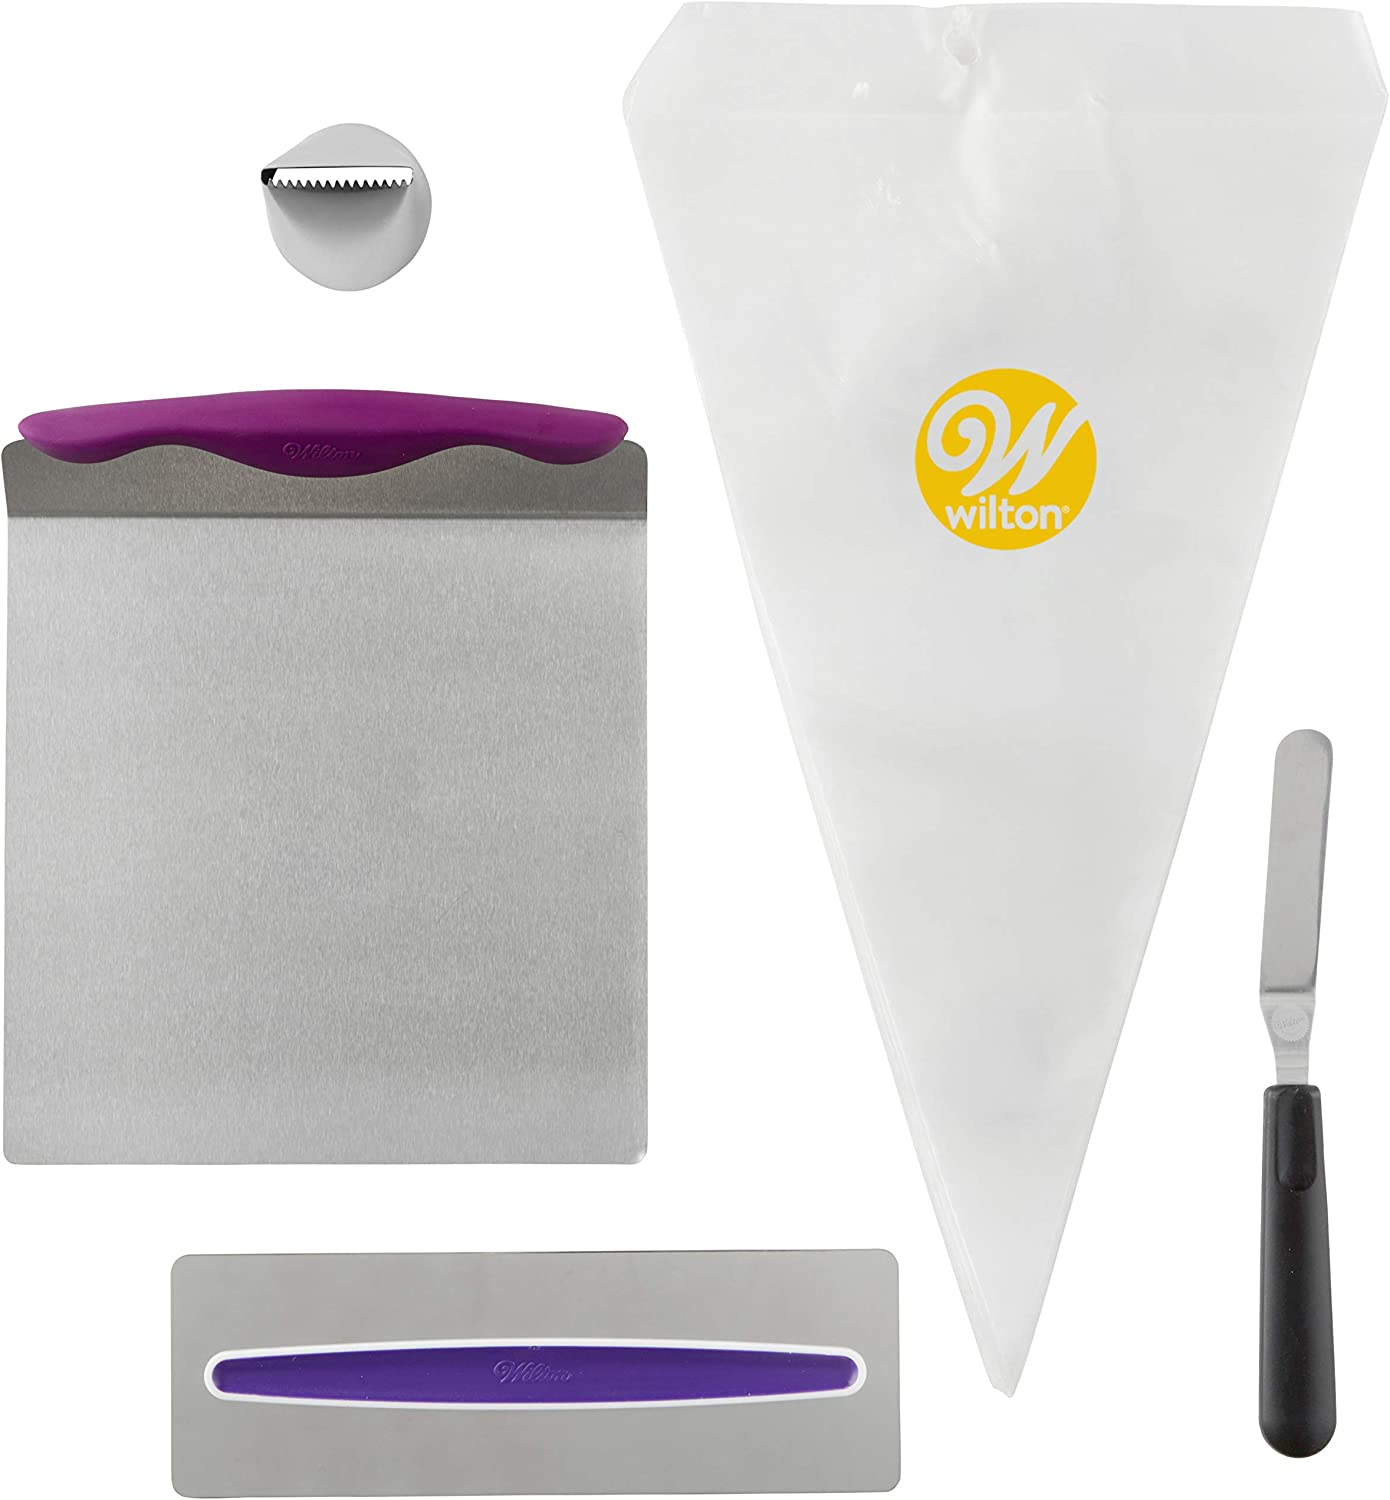 Amazon Com Wilton Cake Decorating Kit For Beginners Lifter Spatula Icing Tip Smoother And Disposable Decorating Bags Kitchen Dining